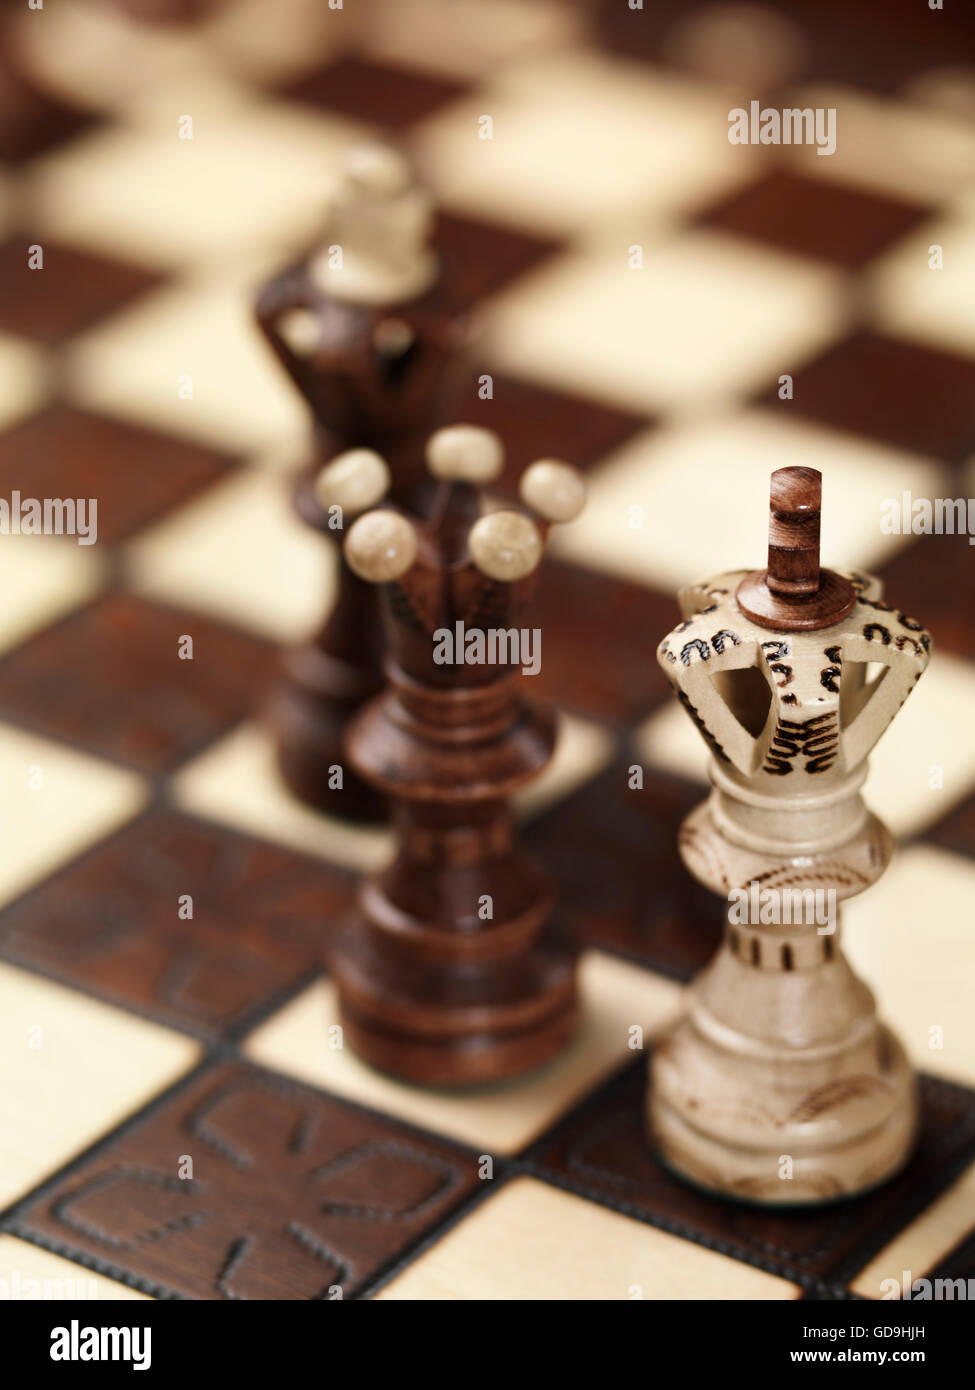 Lose Situation Stock Photos Images Chess Checkmate Diagram Puzzle From The On A Chessboard Image